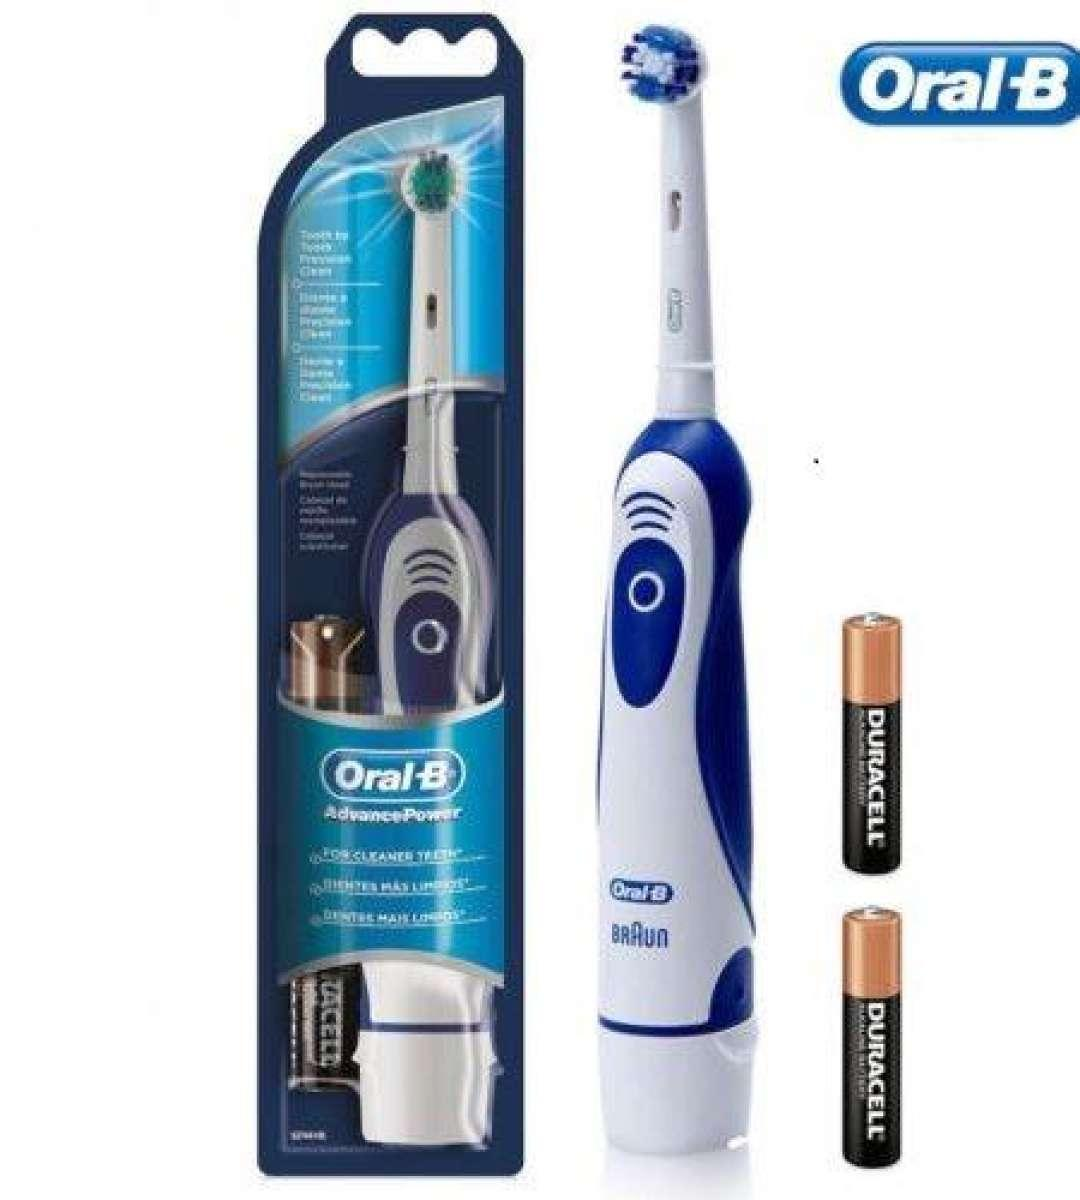 Genuine Oral B Electric Toothbrush DB4010 Battery Operated Tooth Brush